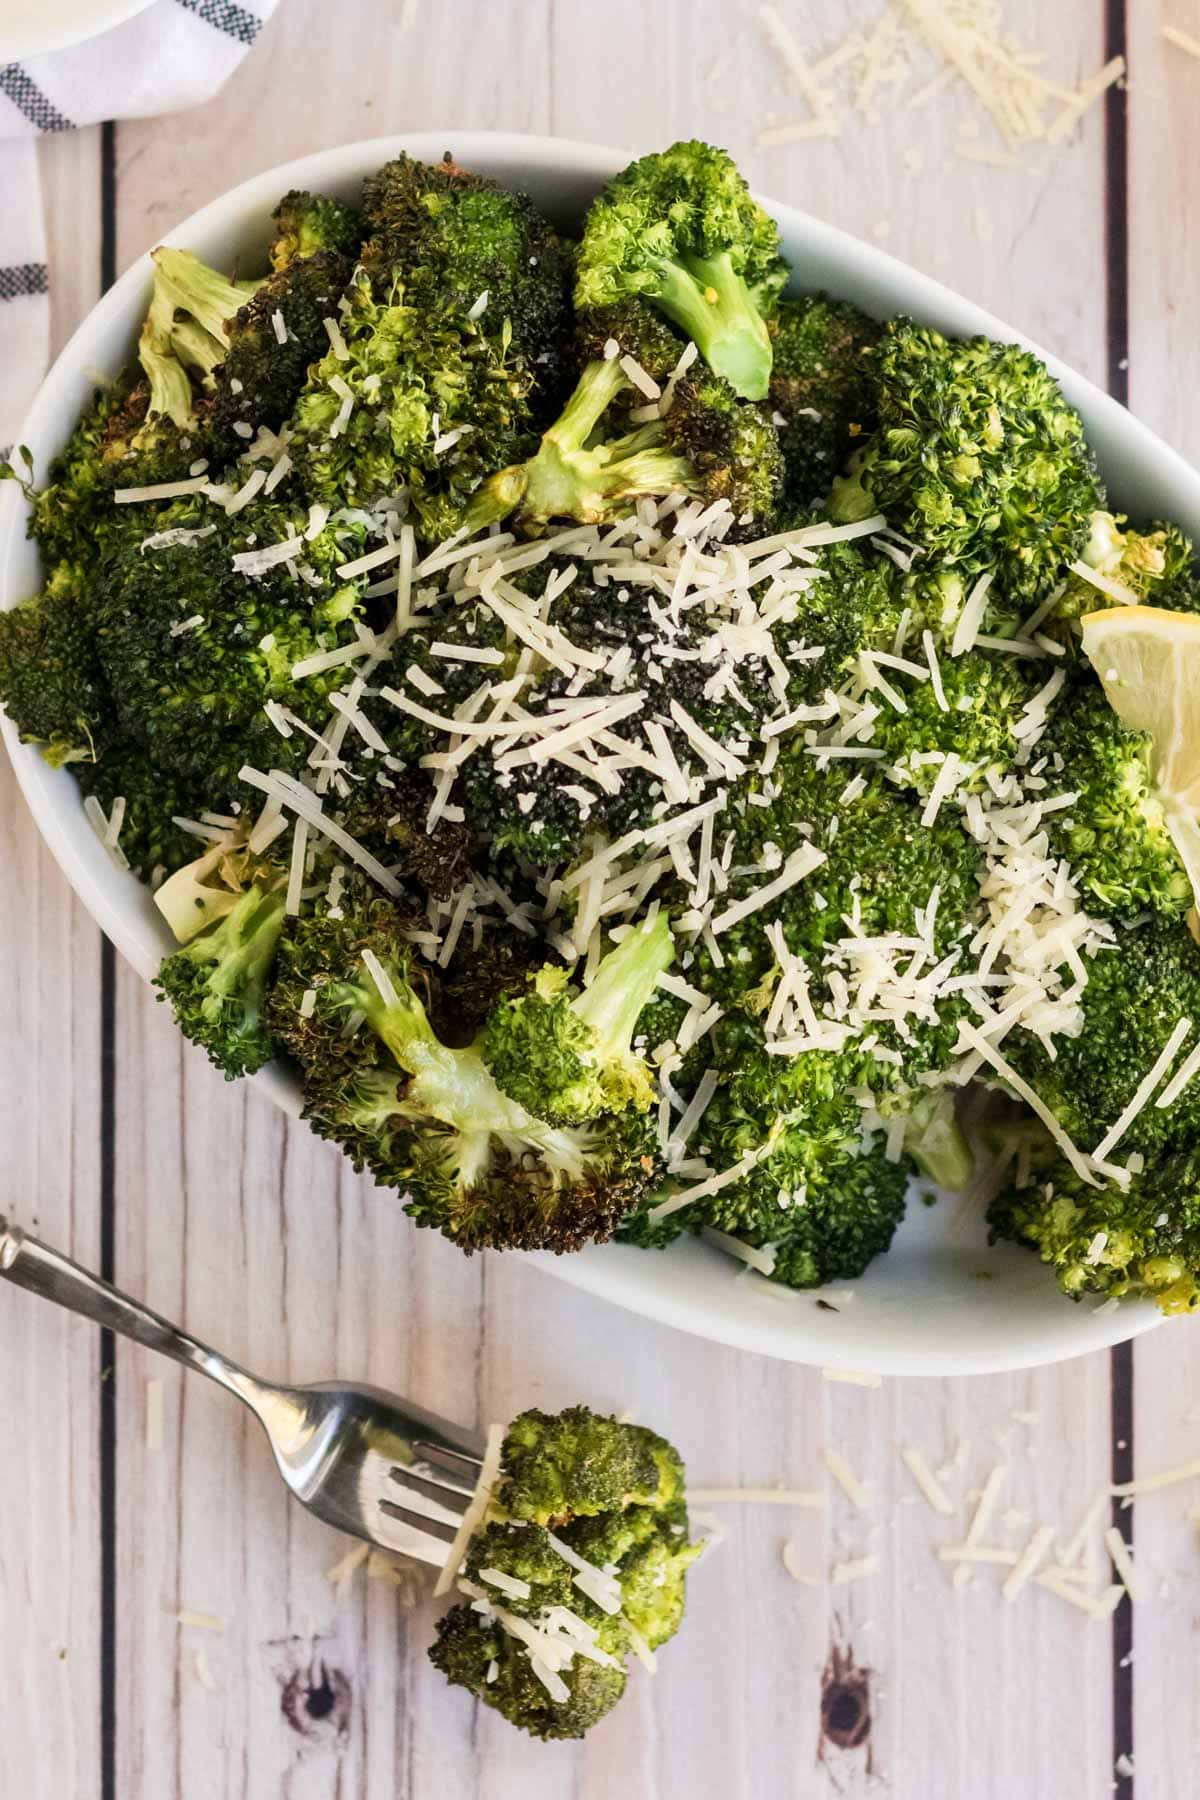 broccoli, white casserole dish, fork, parmesan cheese, lemon